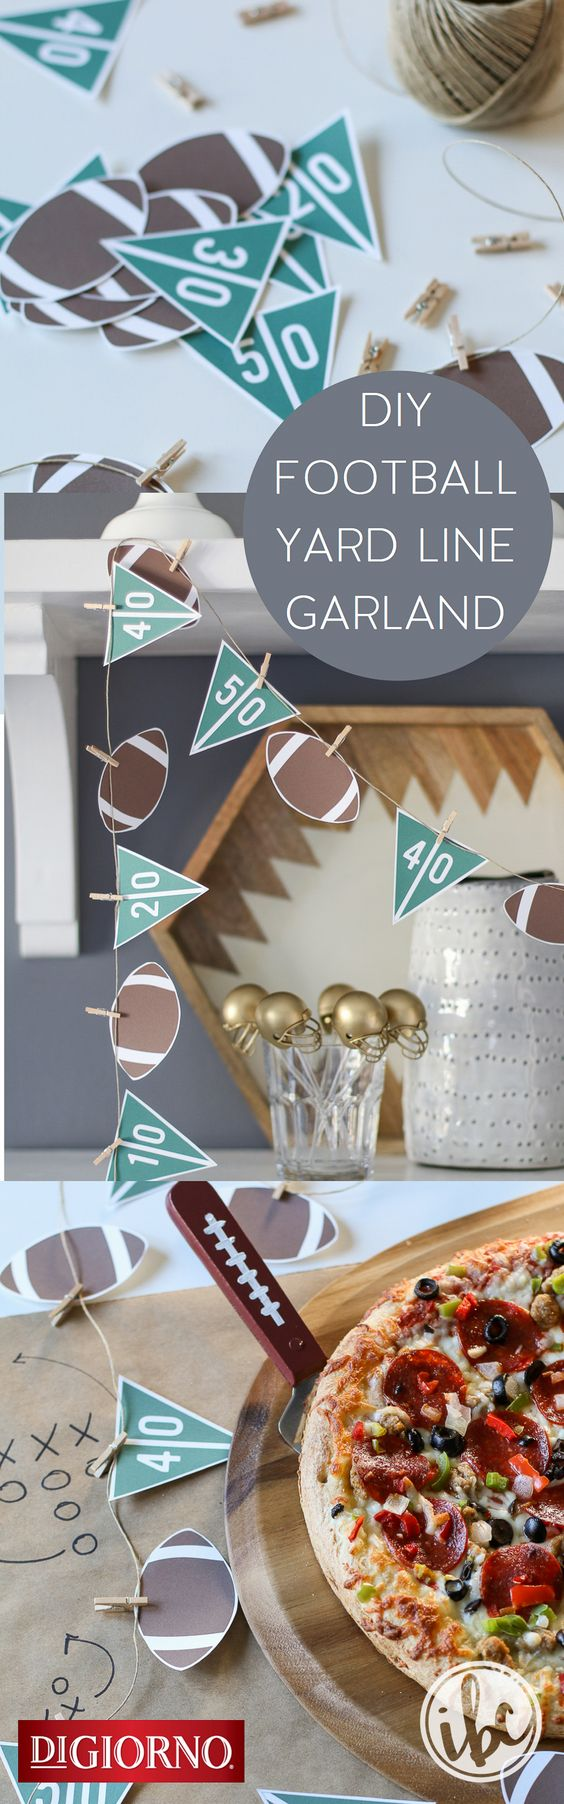 Taken from our partner @inspiredbycharm  playbook, use this tip for a fun game day garland at your next football party! Supplies: DIGIORNO Original RISING CRUST pizza, football & yard line printables, scissors, twine, mini clothespins. 1. Print/cut printables. 2. Cut football & yard line pendants. 3. Attach to twine using clothespins. 3. Bake DIGIORNO Original RISING CRUST pizza for about 20 minutes. 4. Hang garland or use as table décor. 5. Serve pizza & enjoy!: